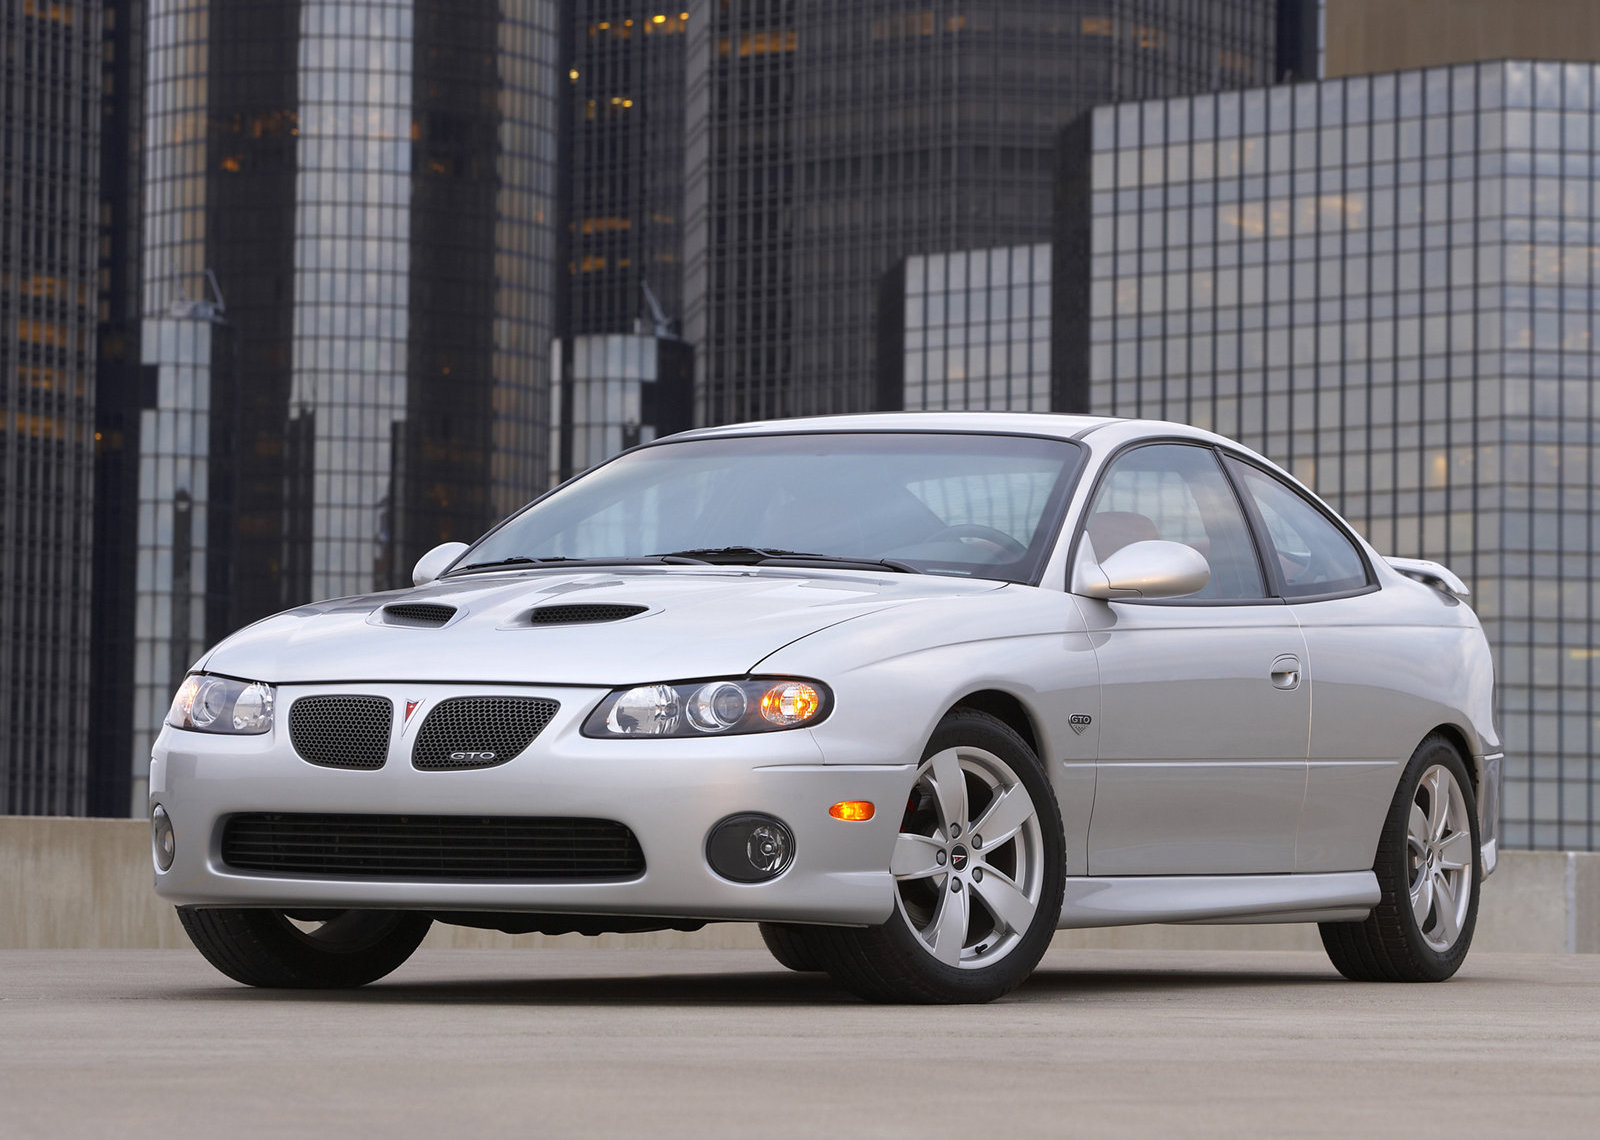 2006 Pontiac GTO Silver front 3/4 in city